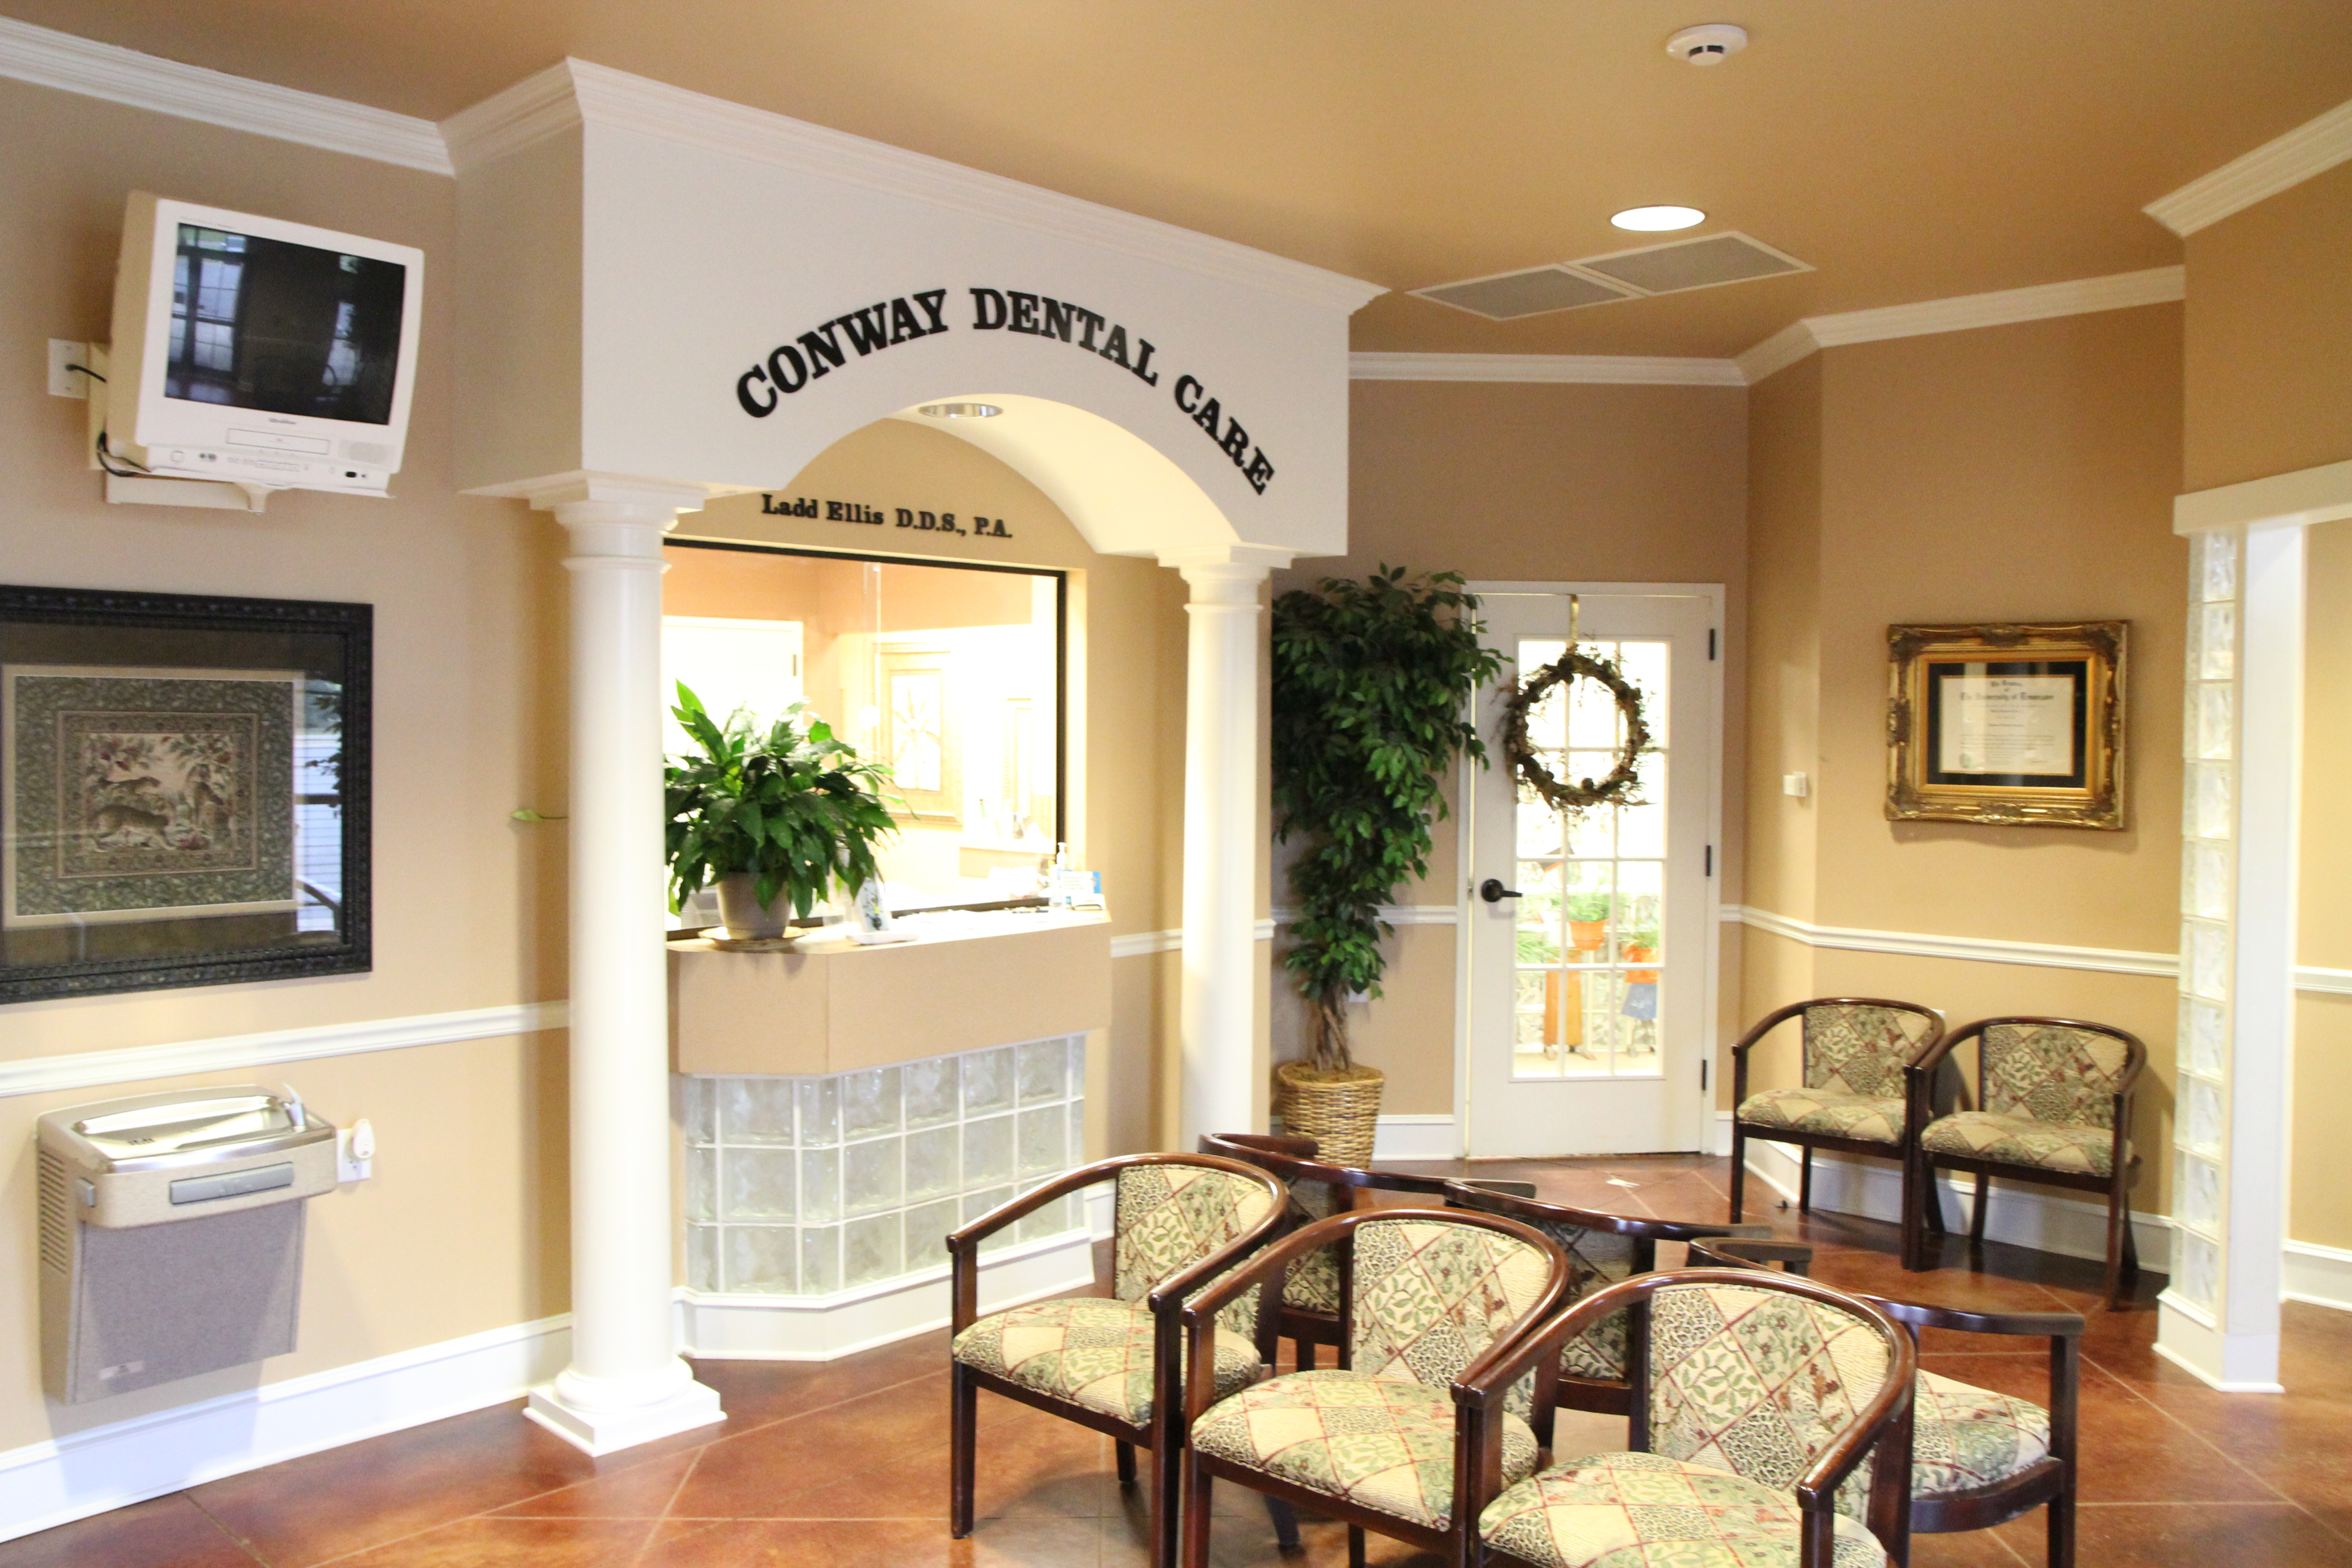 Picture of Ladd Ellis, DDS front room  |Conway Family Dental